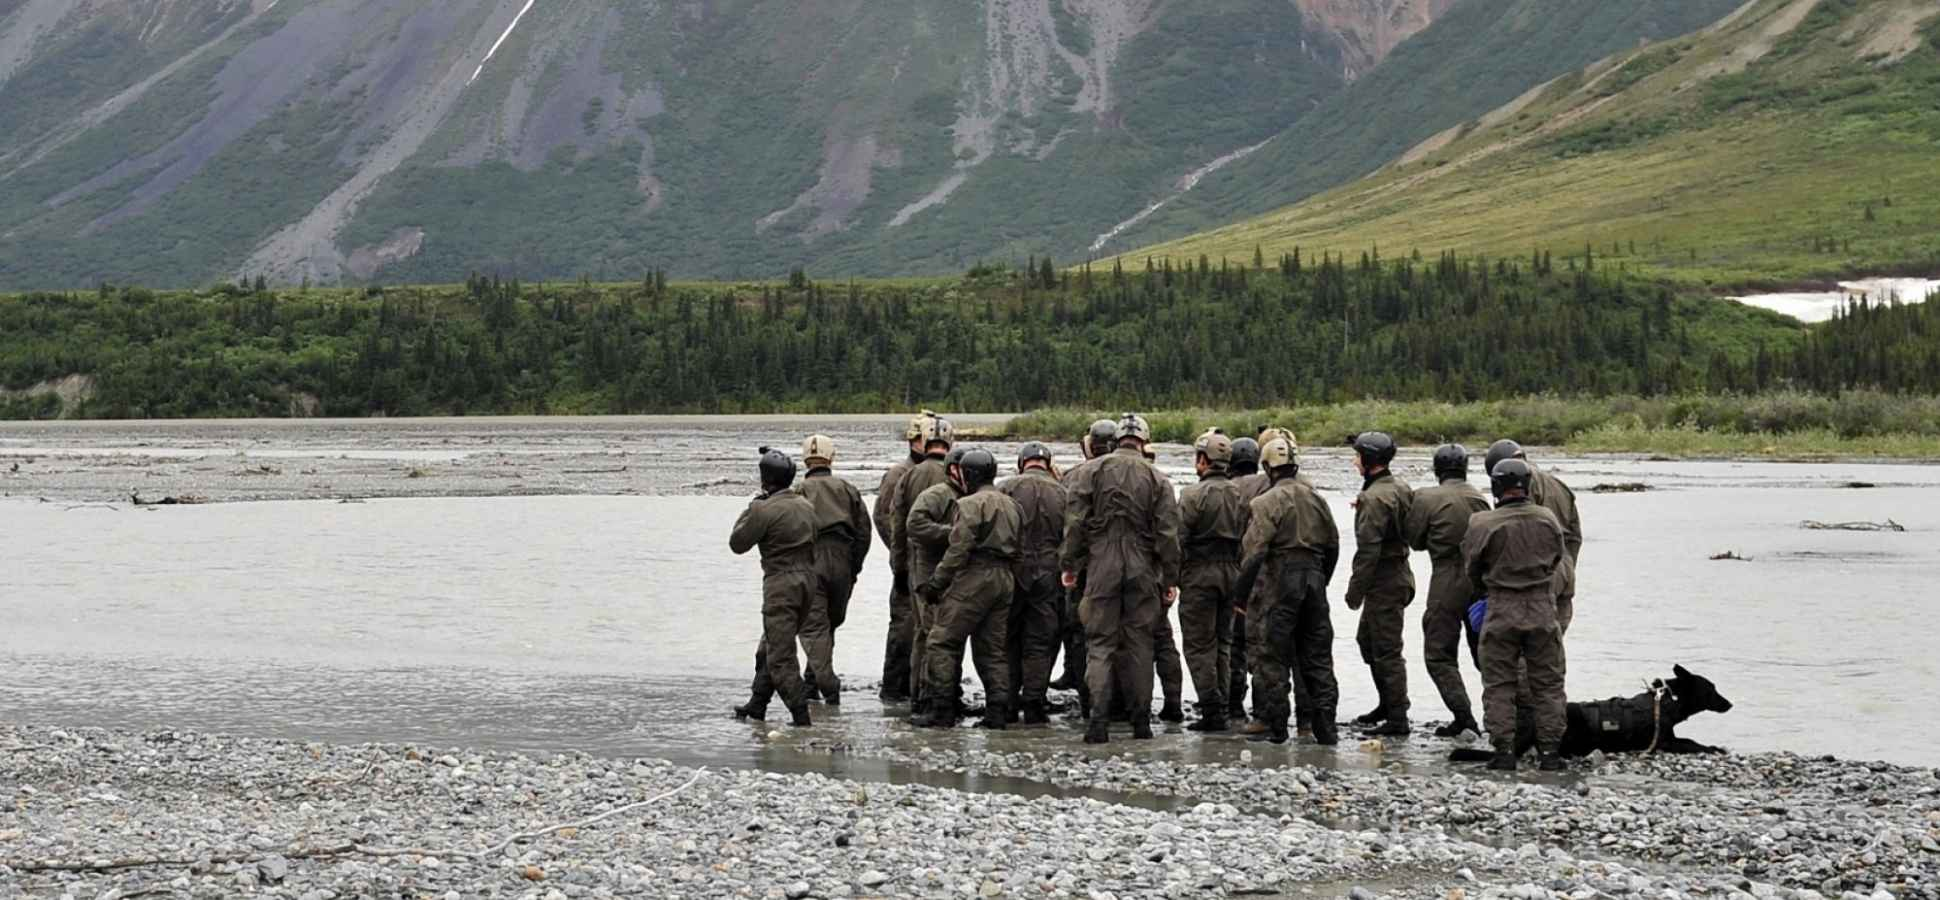 12 Leadership Lessons to Learn From the Navy SEALs